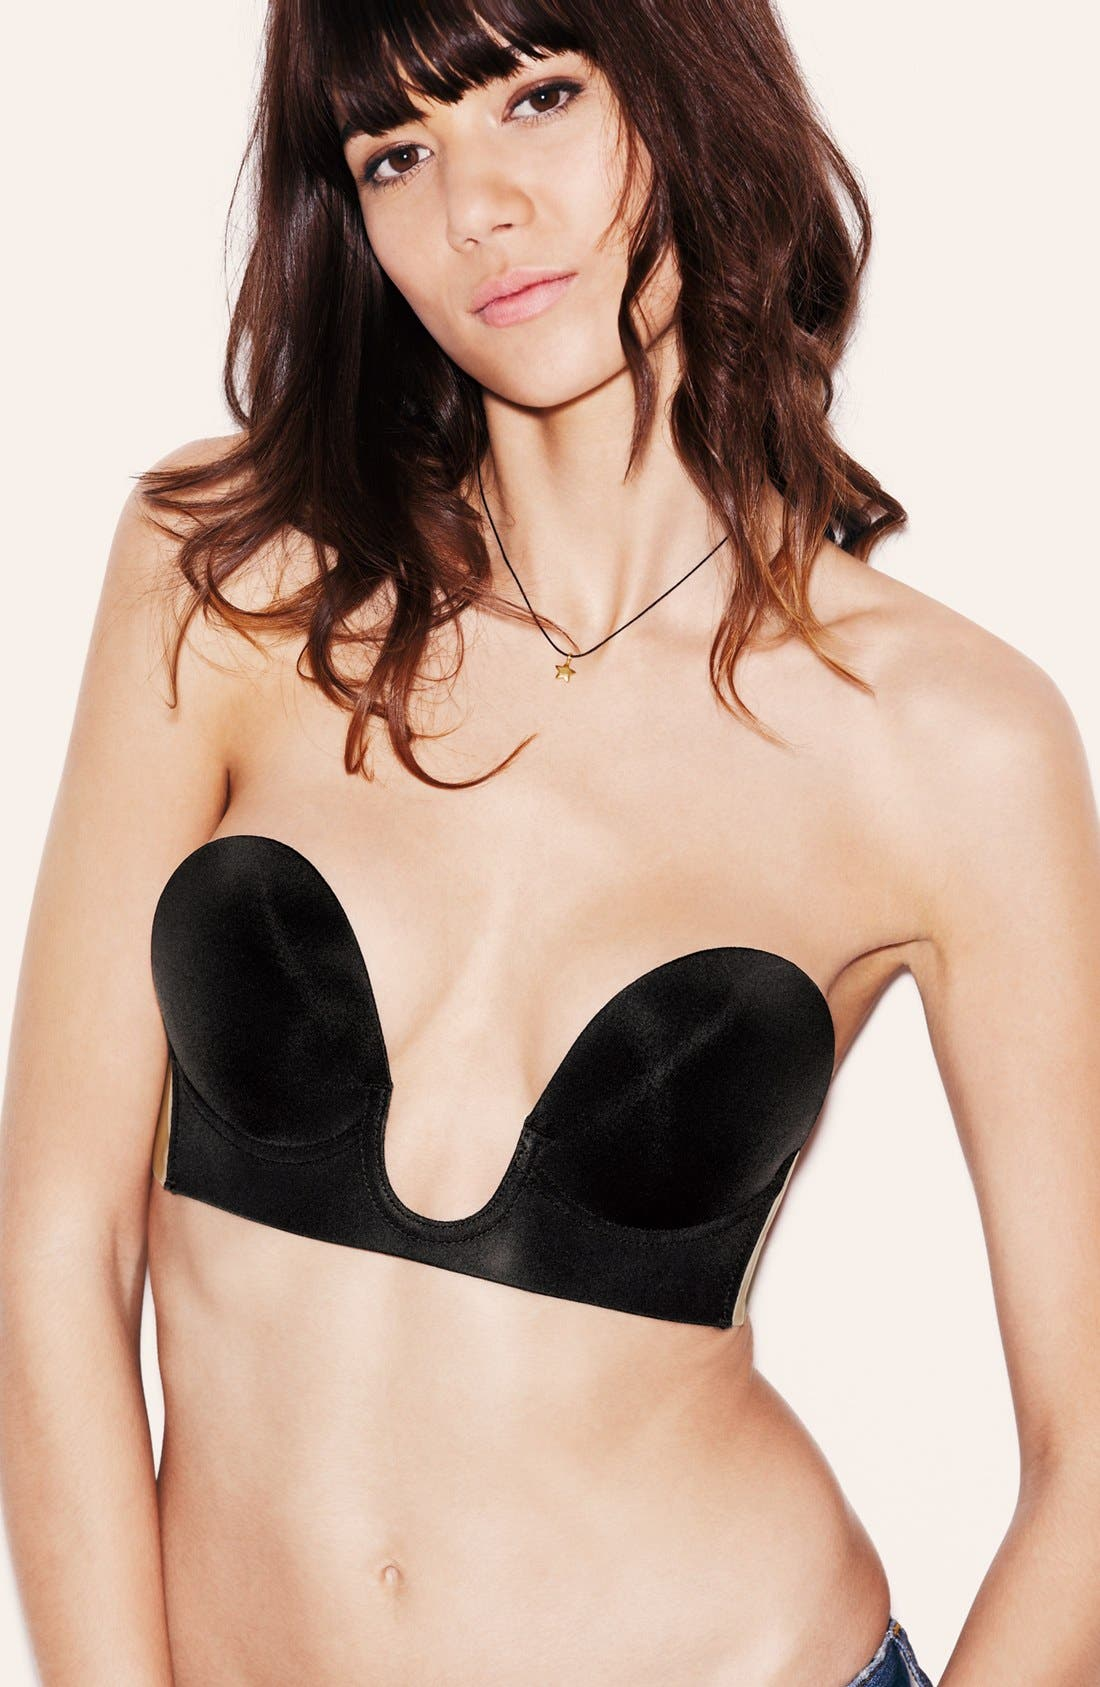 'Uplunge' Backless Strapless Underwire Bra,                             Alternate thumbnail 11, color,                             BLACK